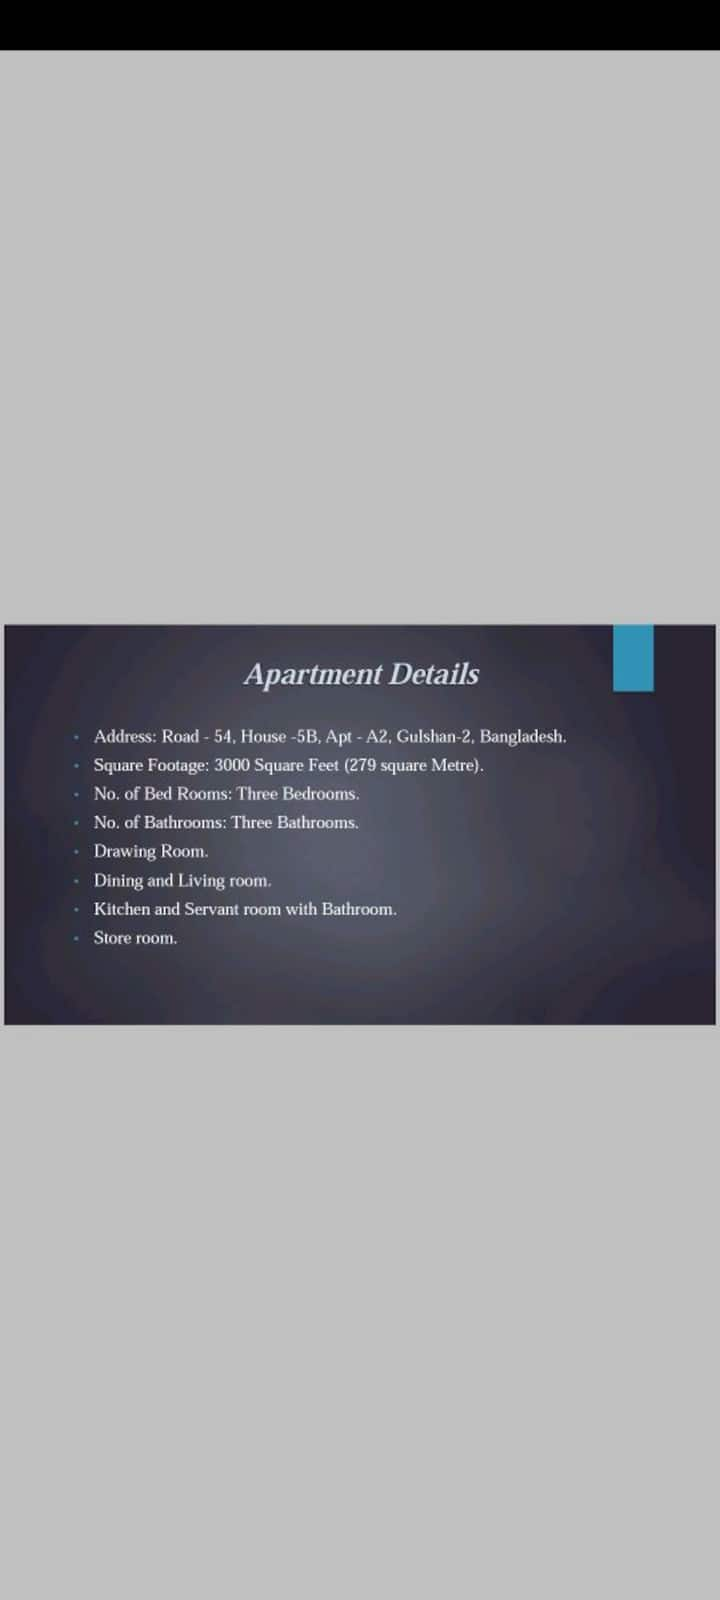 Beautiful Furnished Apartment in Gulshan, Road 54